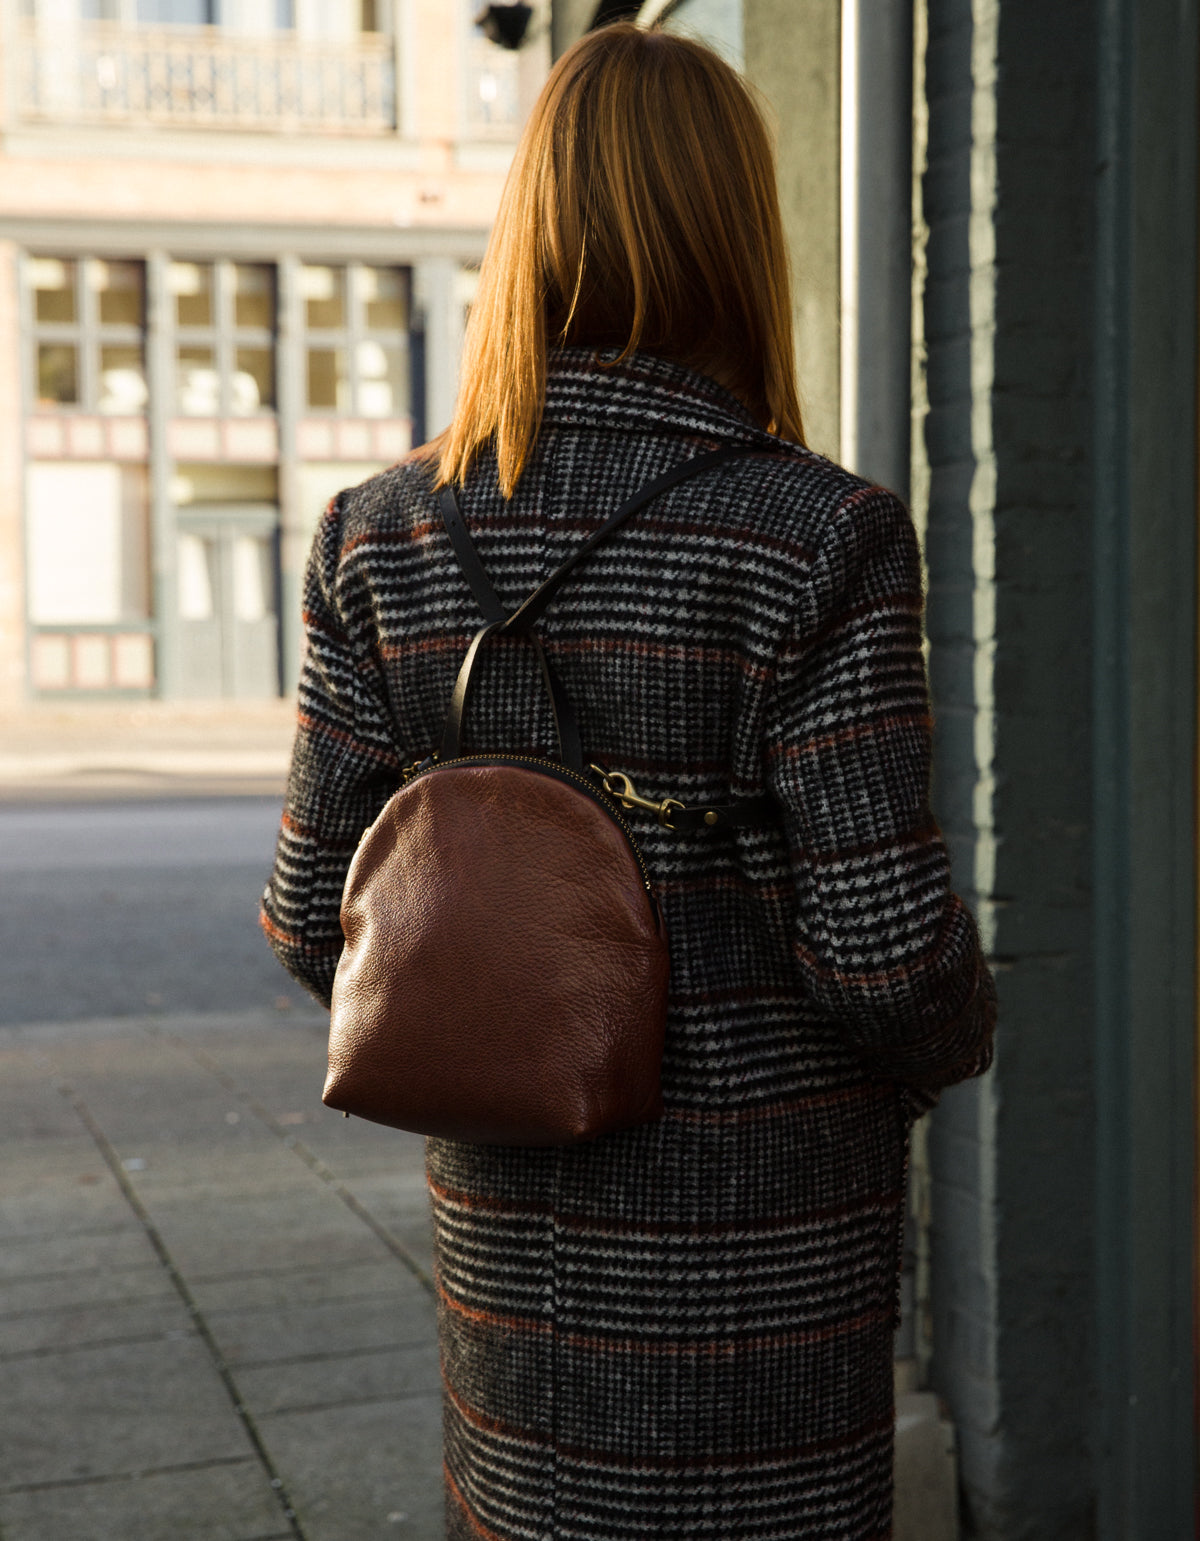 Eleven Thirty Anni Mini Bag Cognac